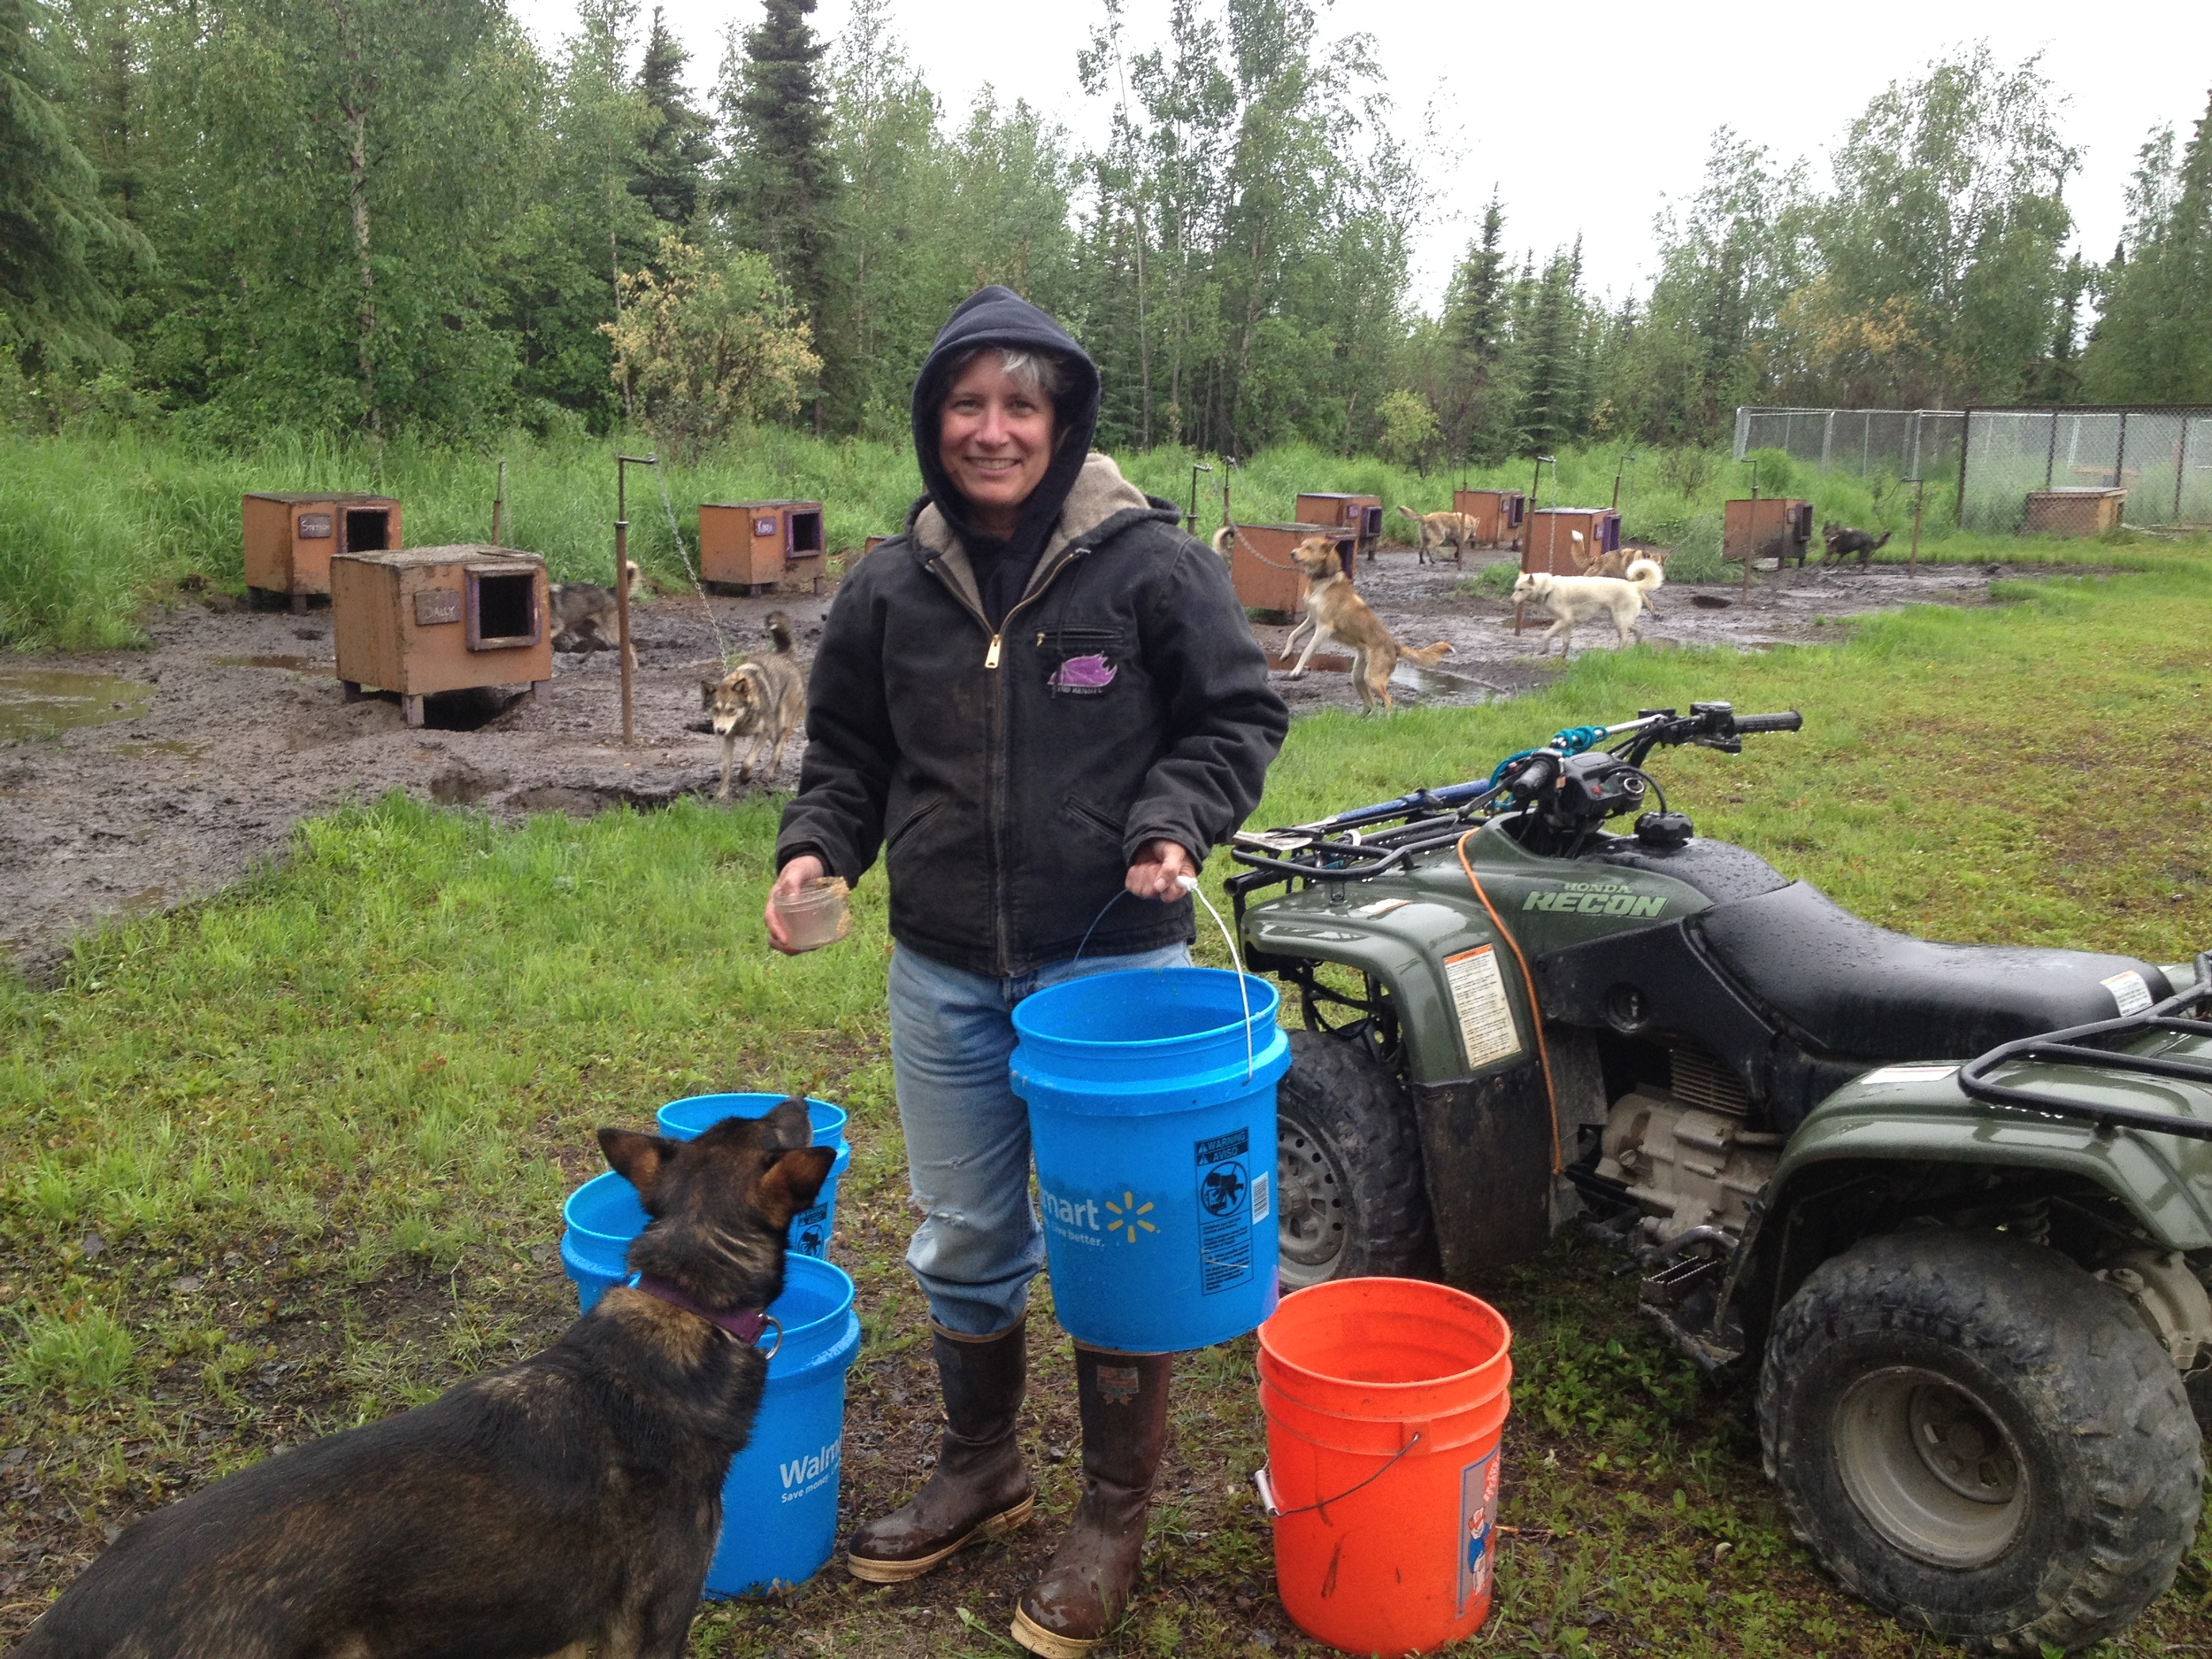 Katy braving the pouring rain to serve dinner to the sled dogs.